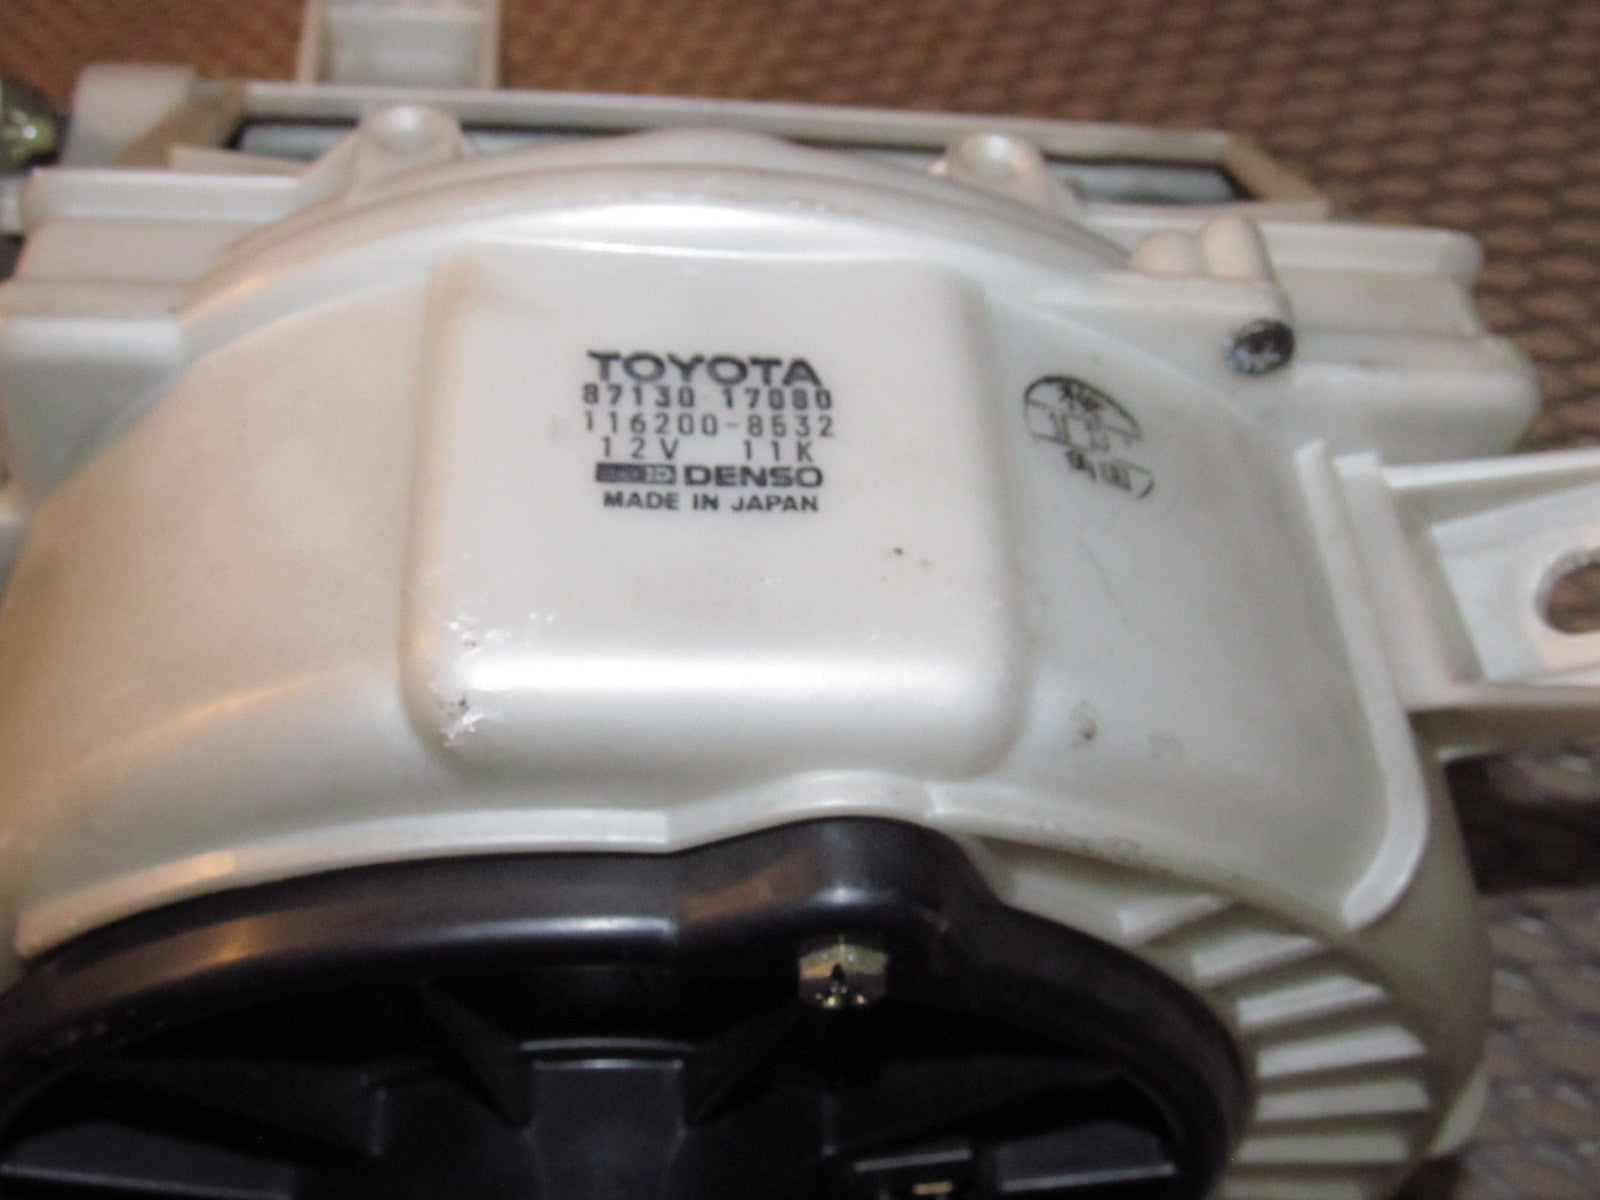 91 92 93 94 95 Toyota Mr2 Oem A C Heater Blower Motor Assembly 1993 Engine Diagram